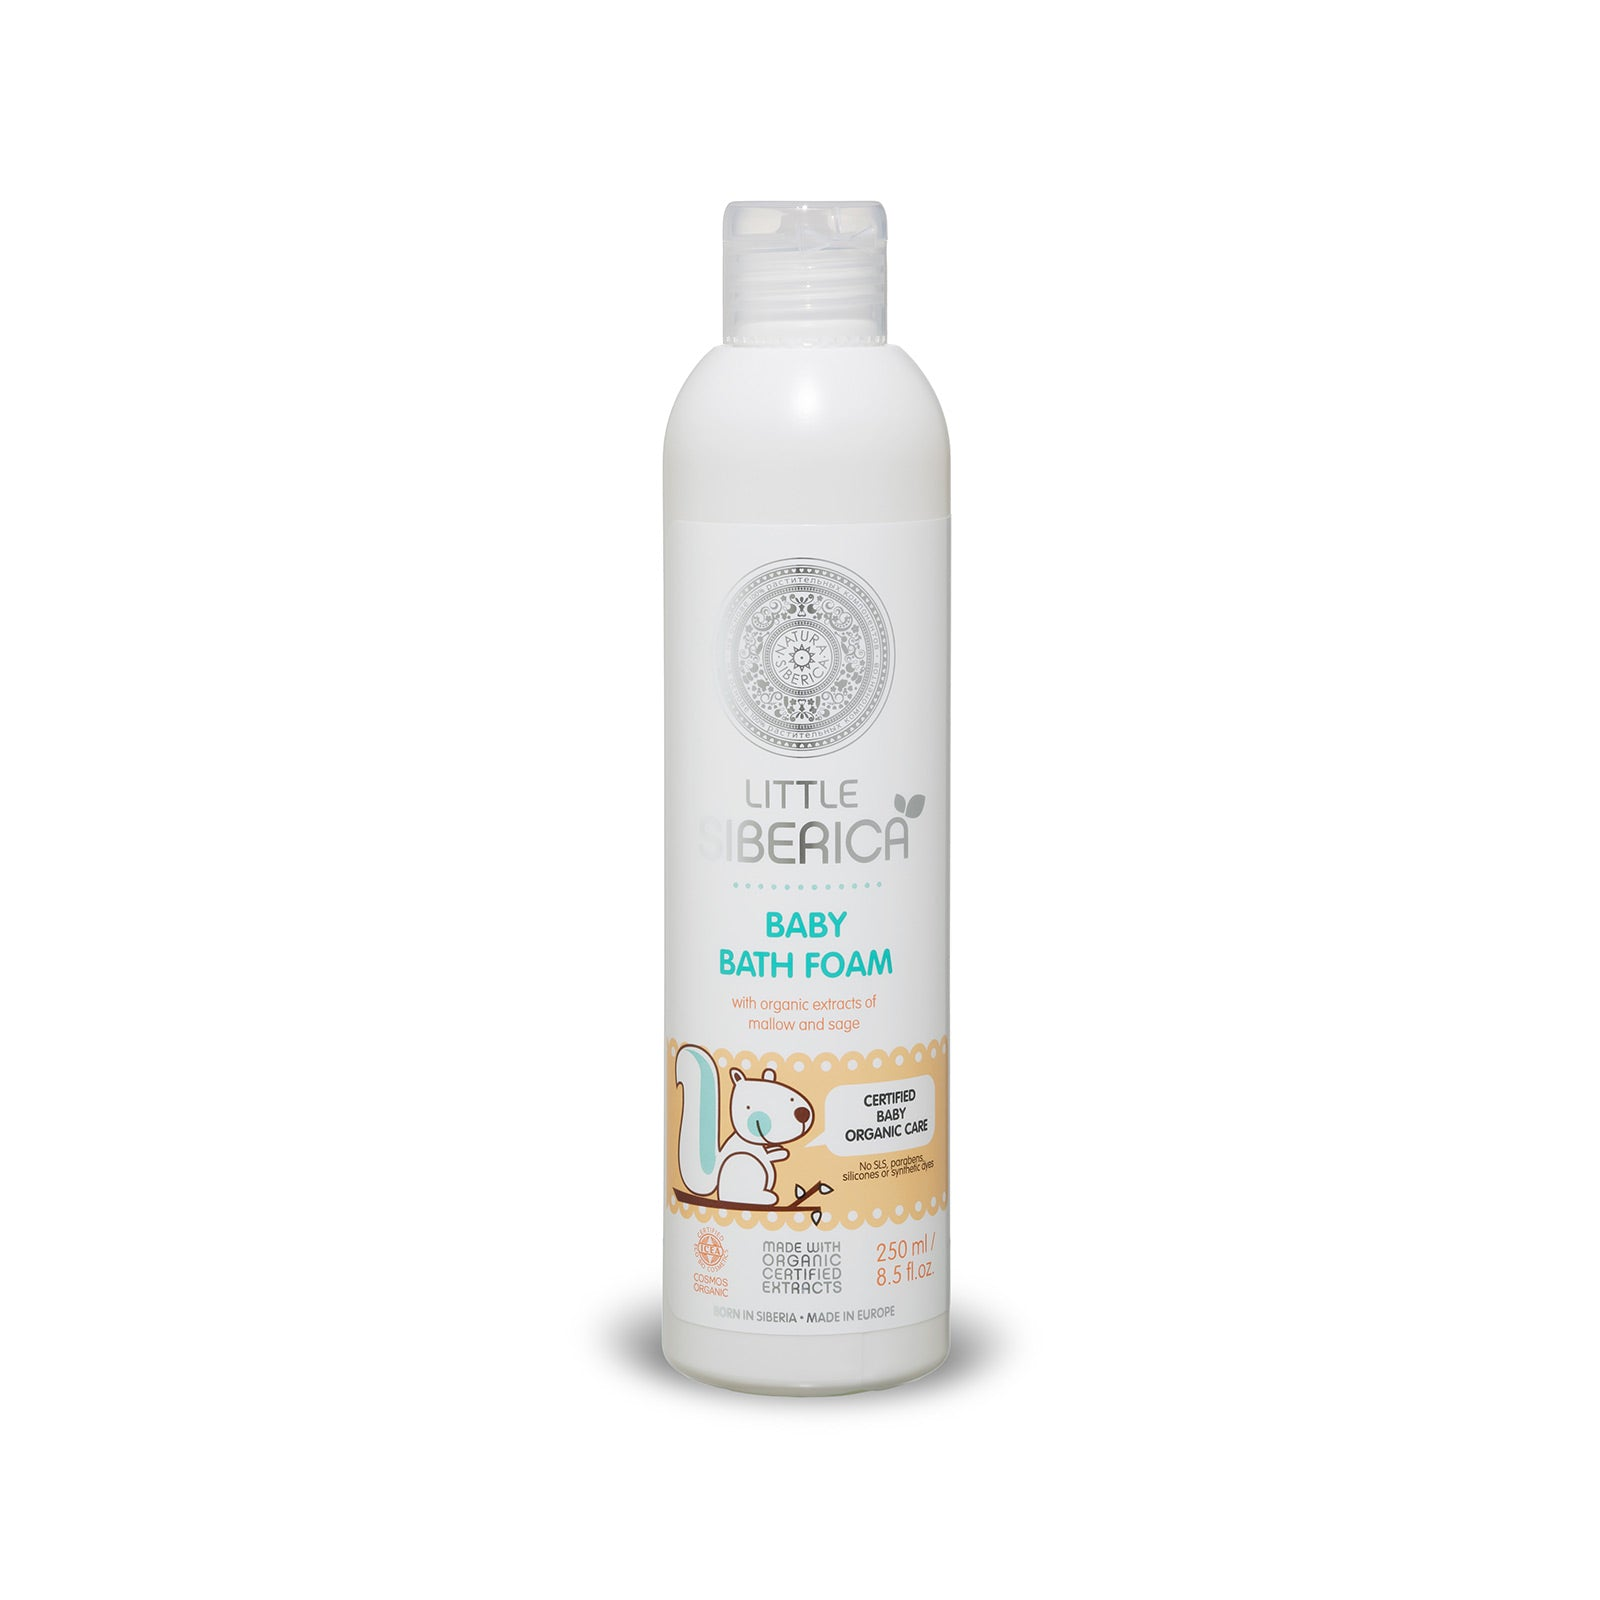 Little Siberica Baby Bath Foam, 250ml